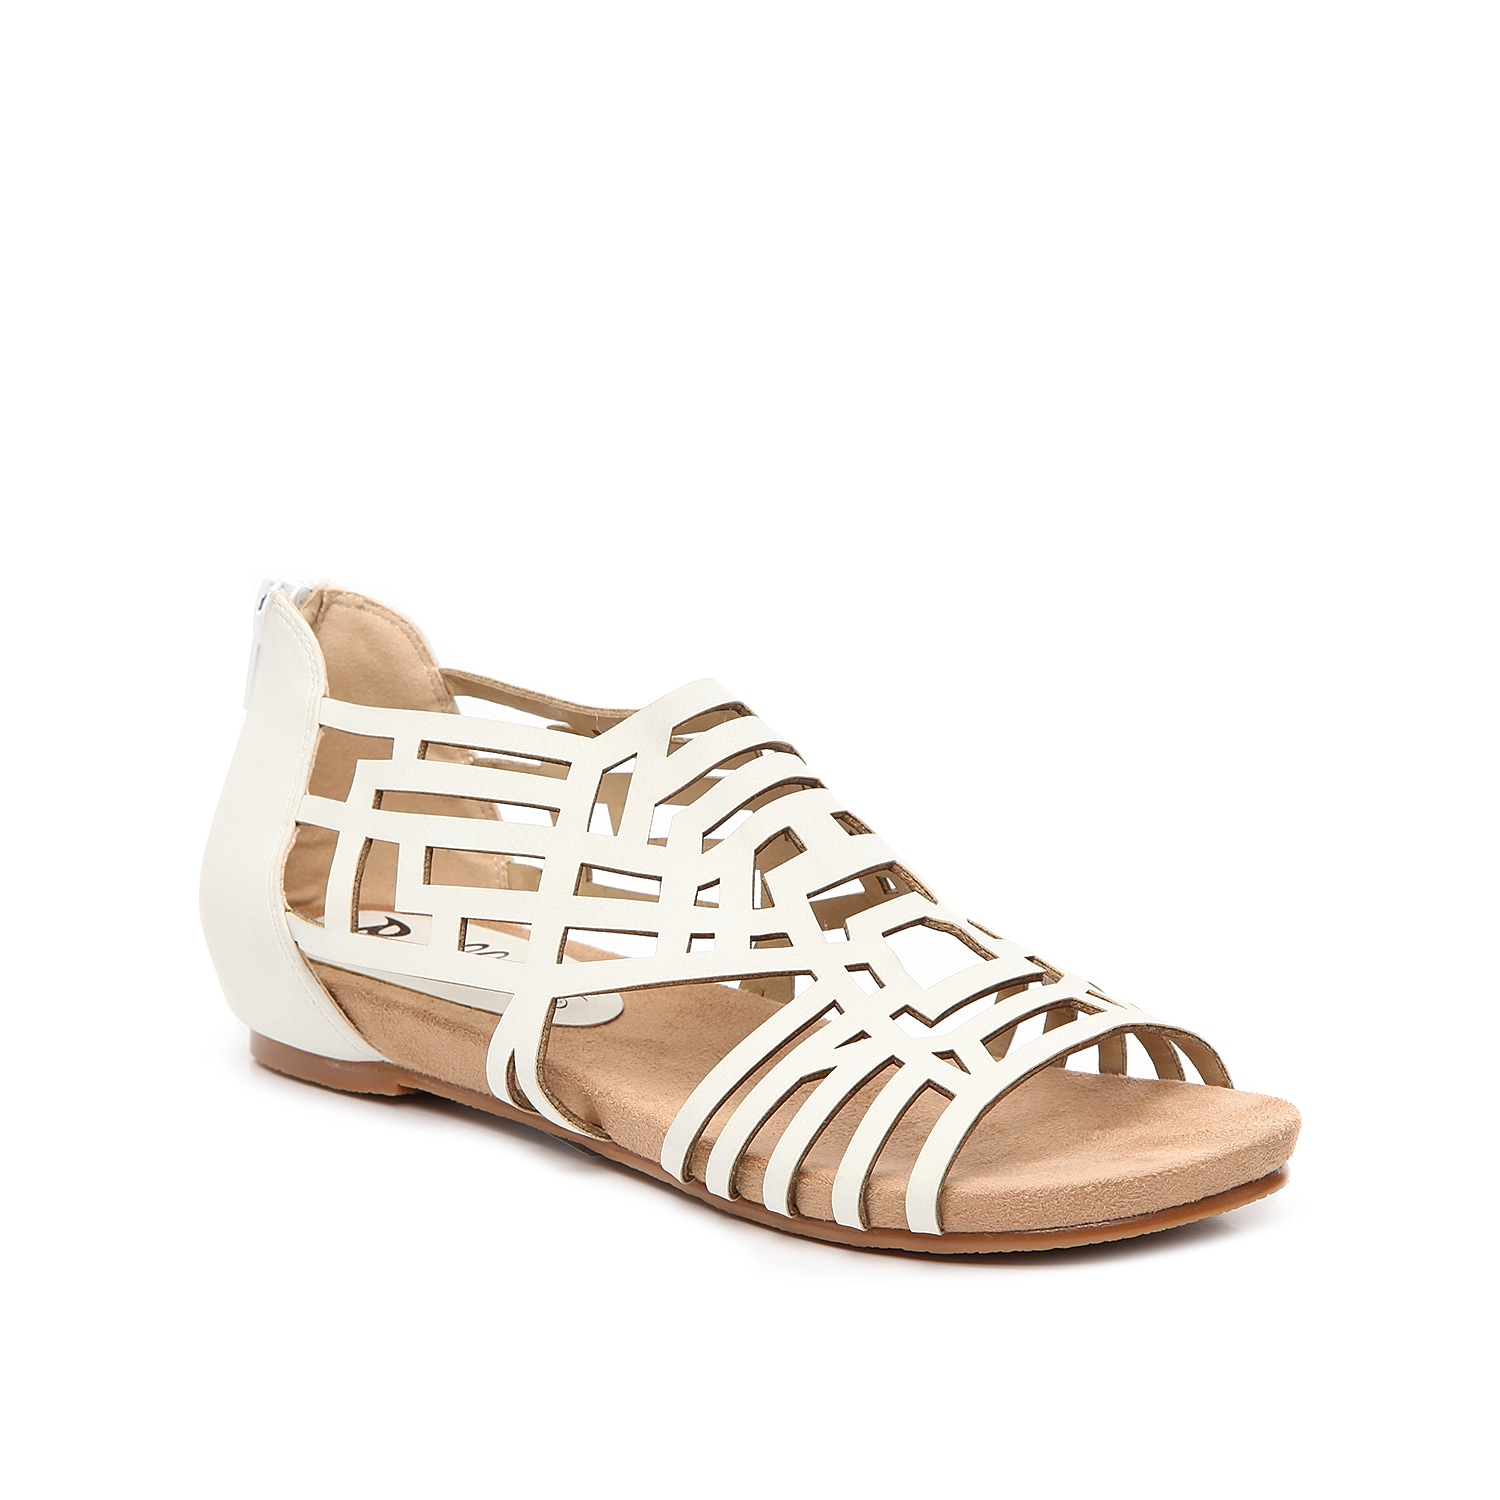 Show off your trendy chic style with the Nazareth wedge sandal from Bellini. A geometric laser cut upper and low wedge heel add a unique vibe to this pair.